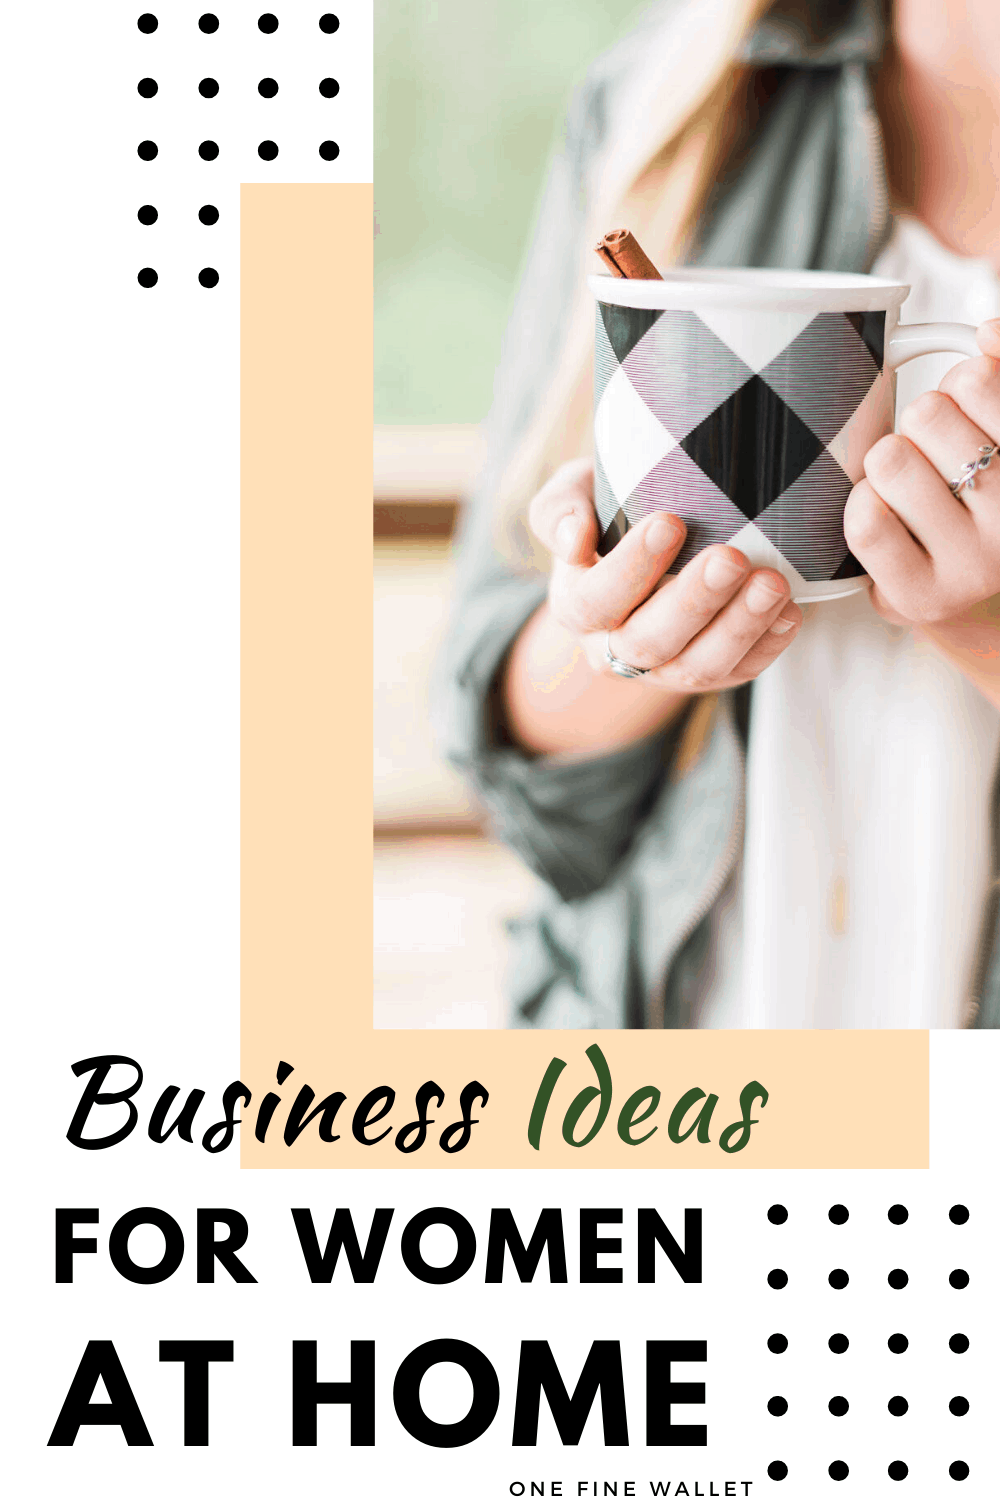 Smart Business Ideas for Women at home. Start a new work at home career in 2020!